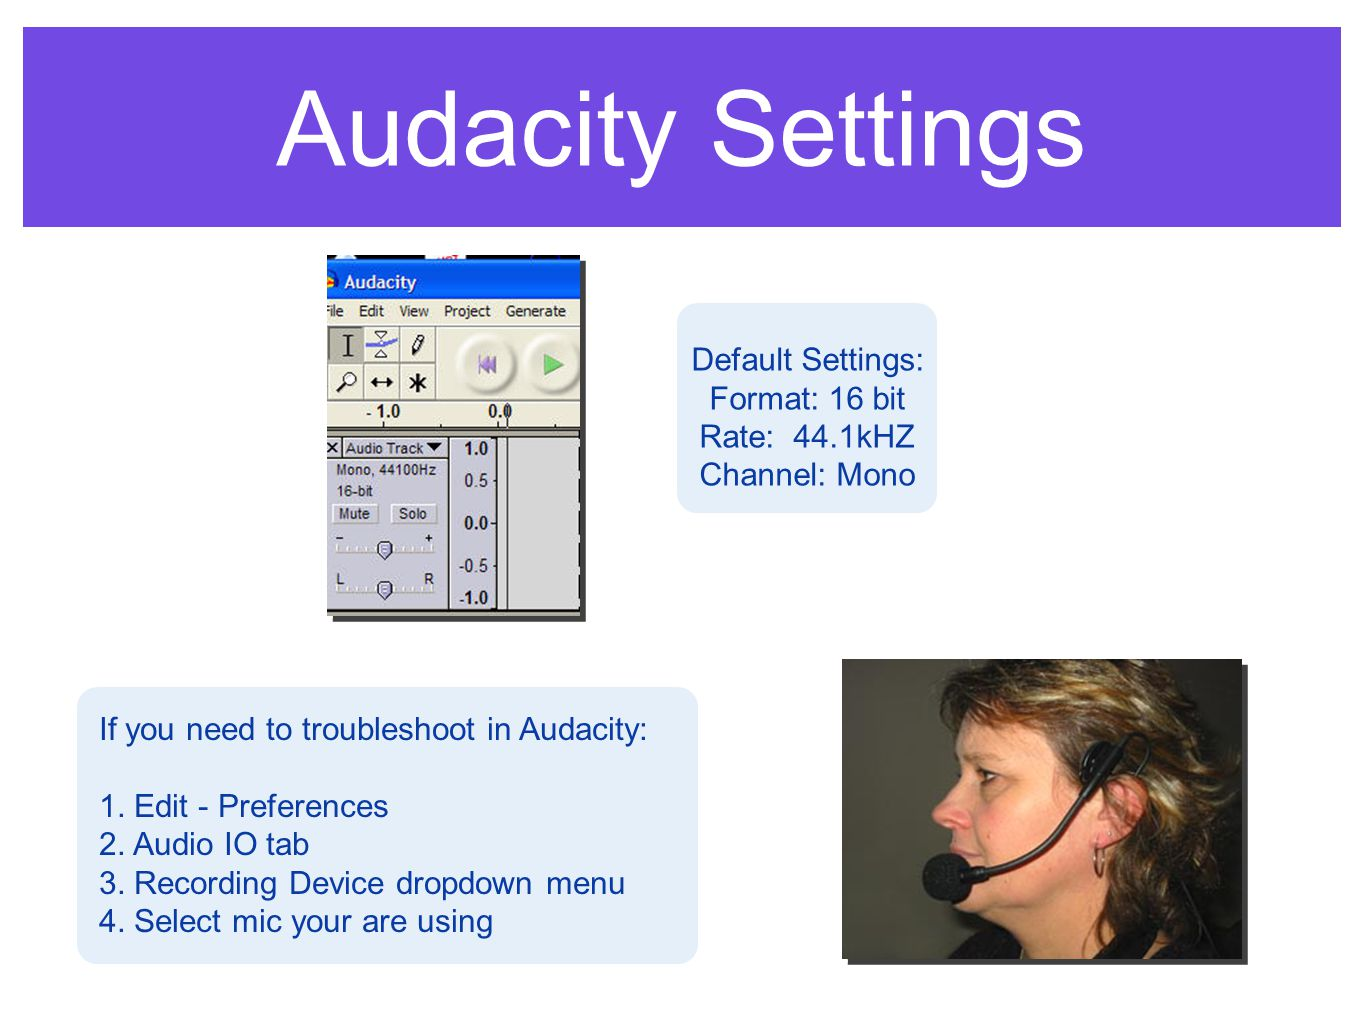 Audacity Settings Default Settings: Format: 16 bit Rate: 44.1kHZ Channel: Mono If you need to troubleshoot in Audacity: 1.